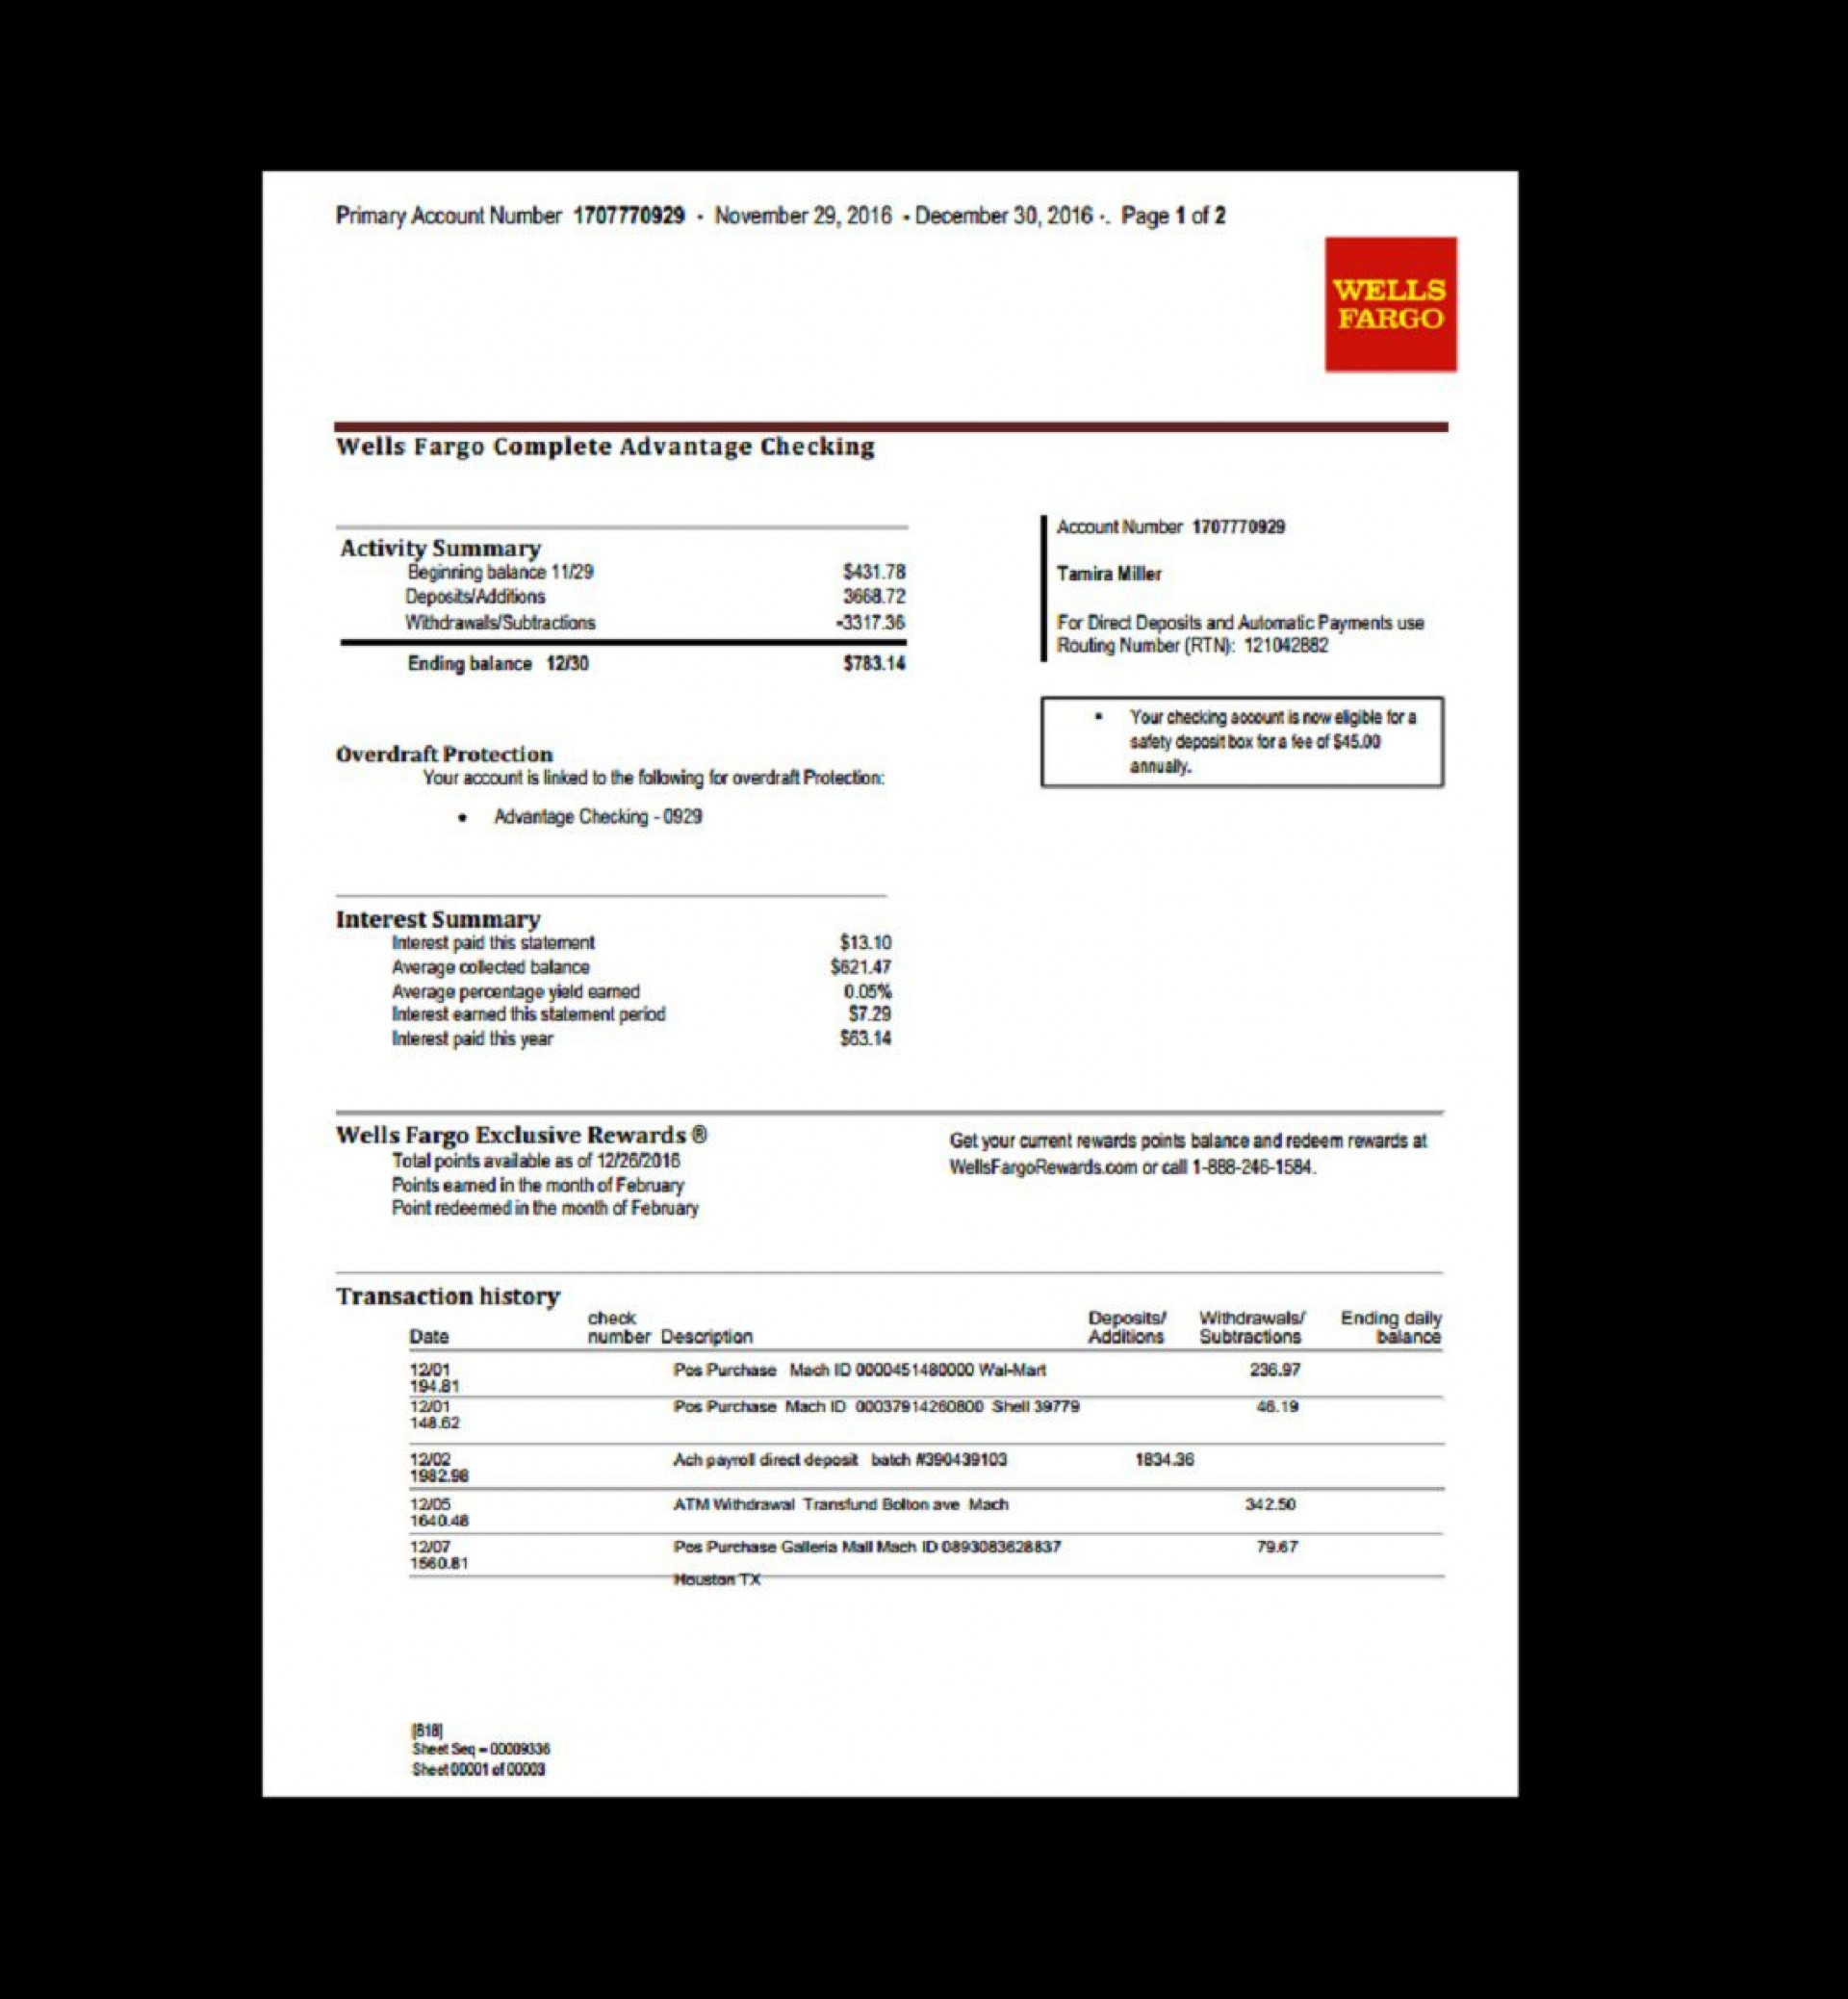 005 Exceptional Well Fargo Bank Statement Template High Def  Fillable Editable1920